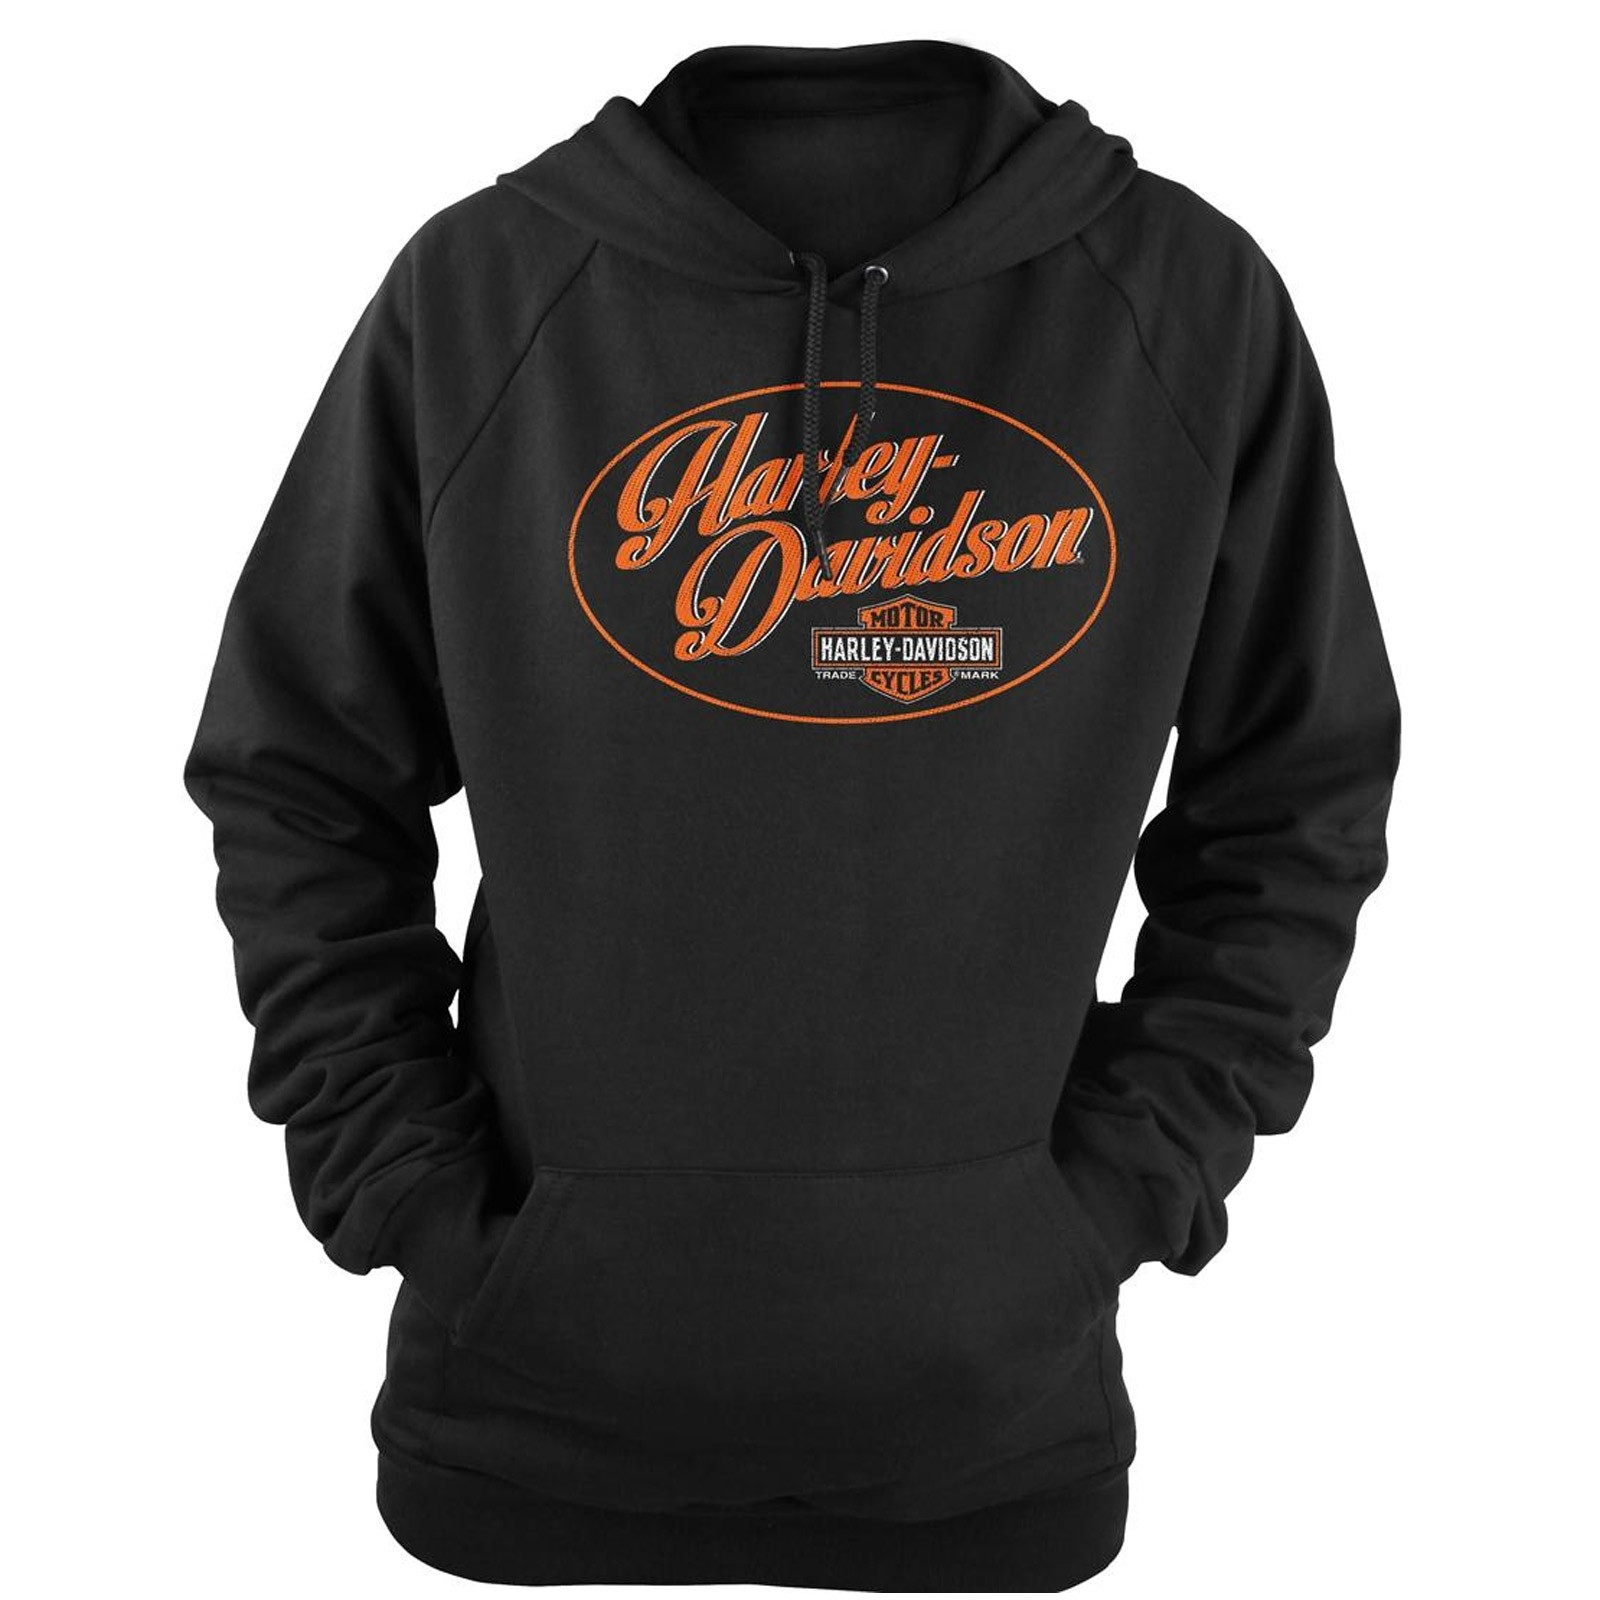 Women's Black Graphic Pullover Hooded Sweatshirt - Overseas Tour | Wow